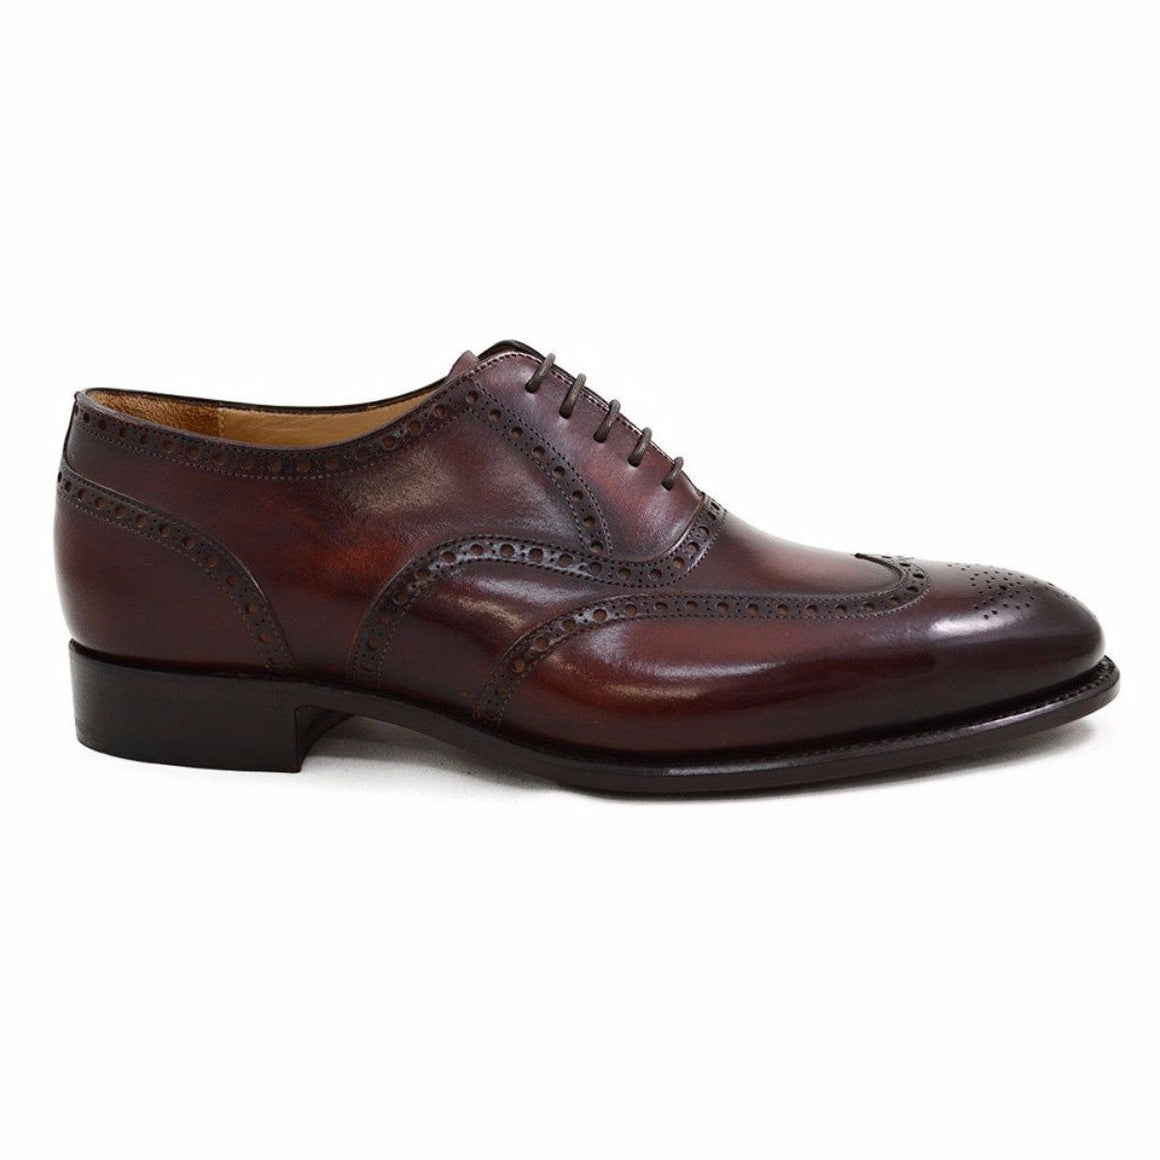 Carlos Santos Wingtip Brogue in Wine Shadow Patina